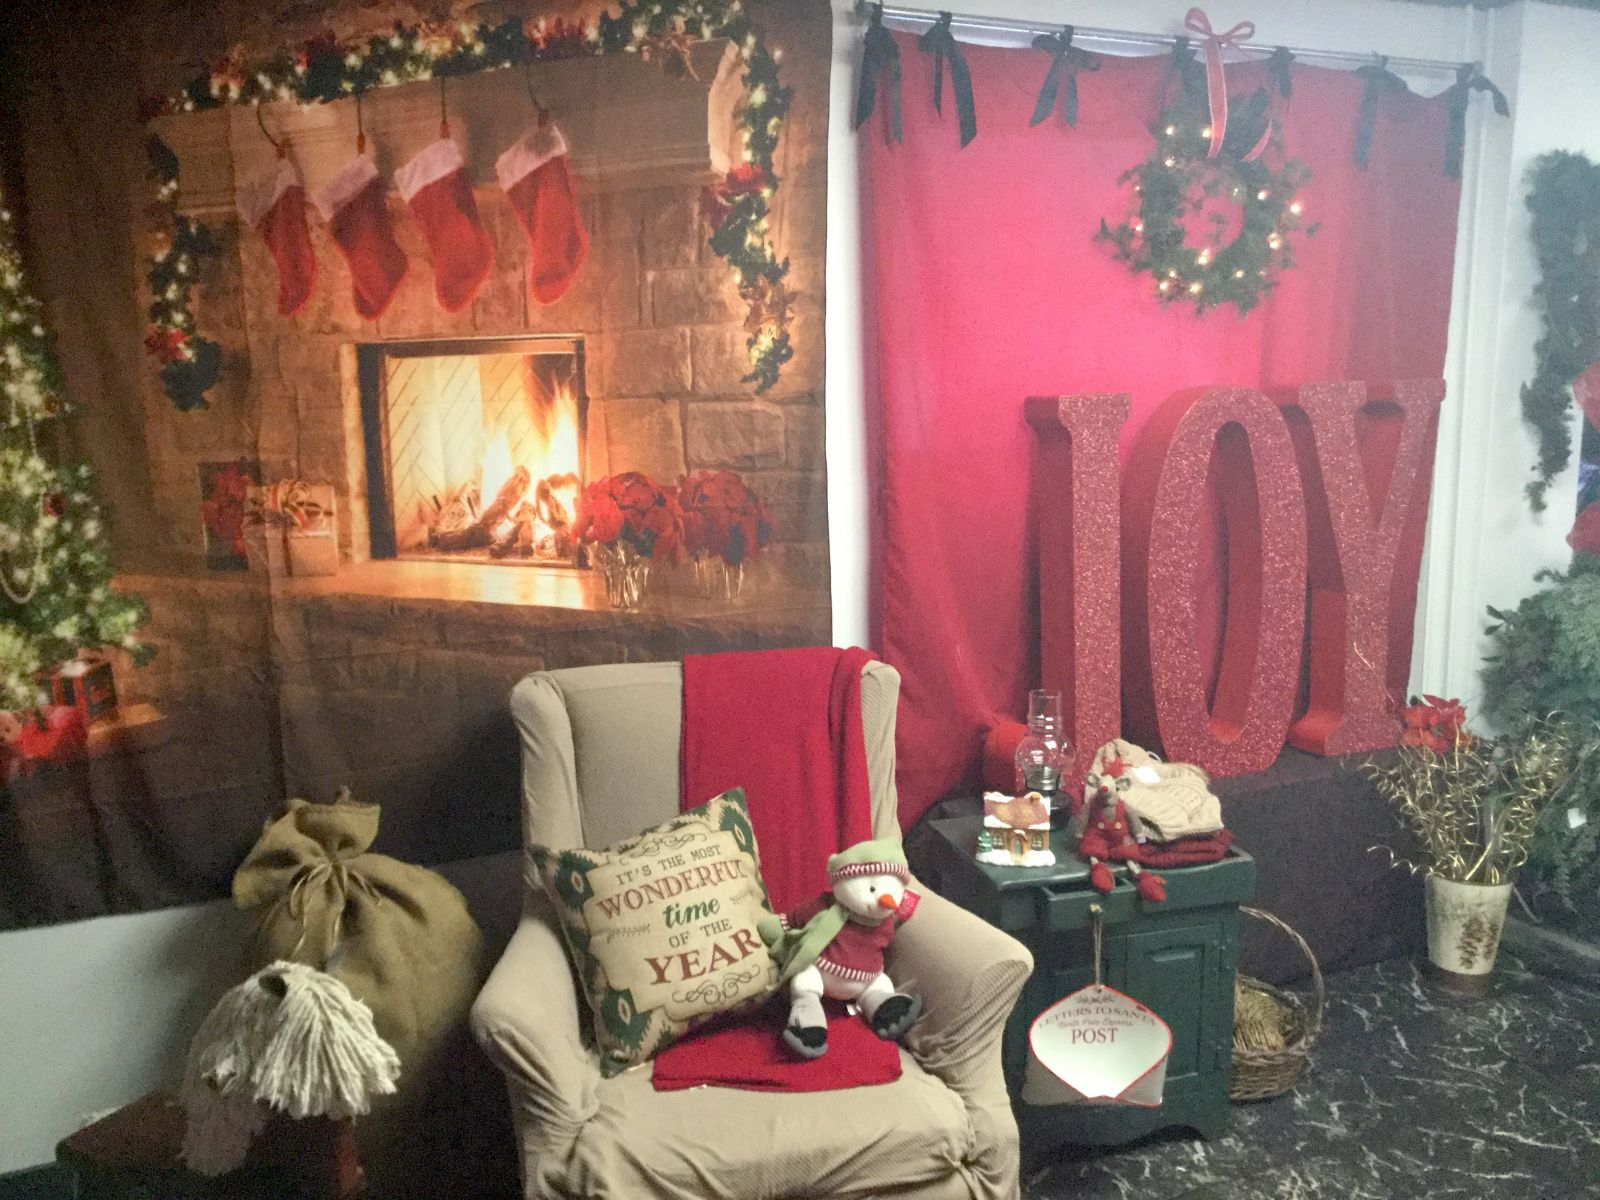 Cabin Fever has created their own Christmas Room with ornaments, decor, and gifts just for the holiday season.